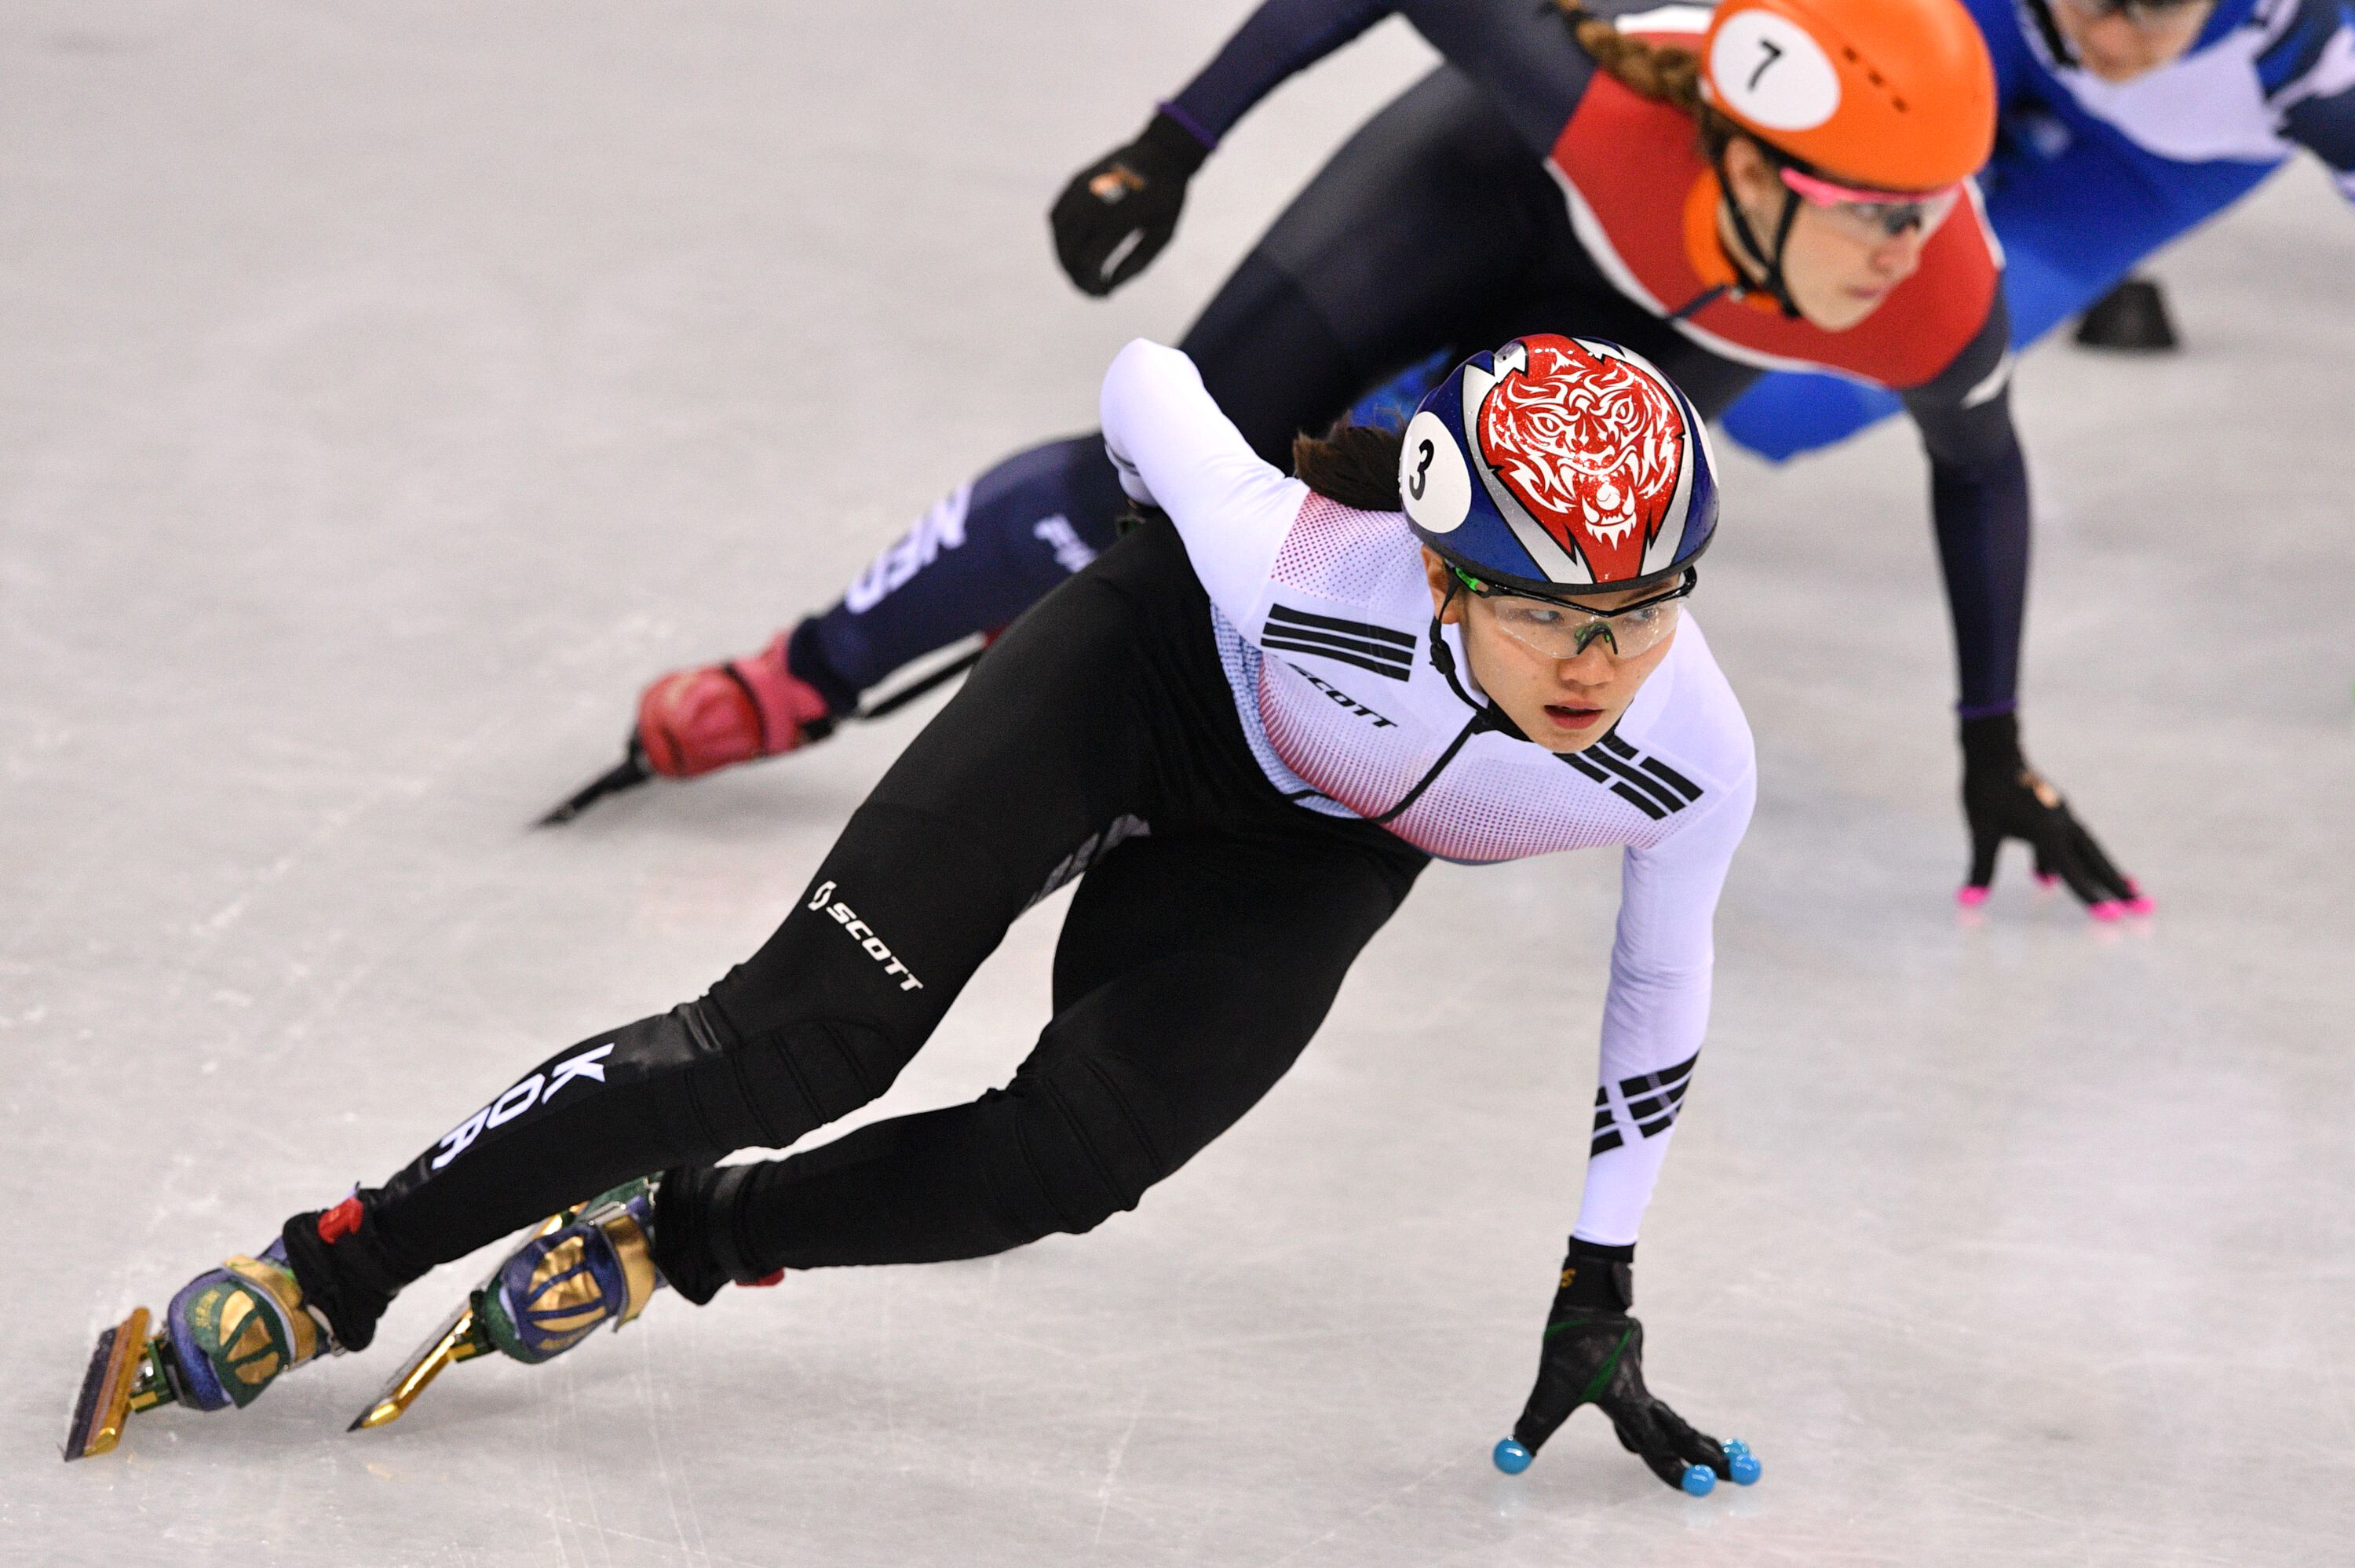 South Korean speed skater Shim Suk-hee barred from training following leaked text messages